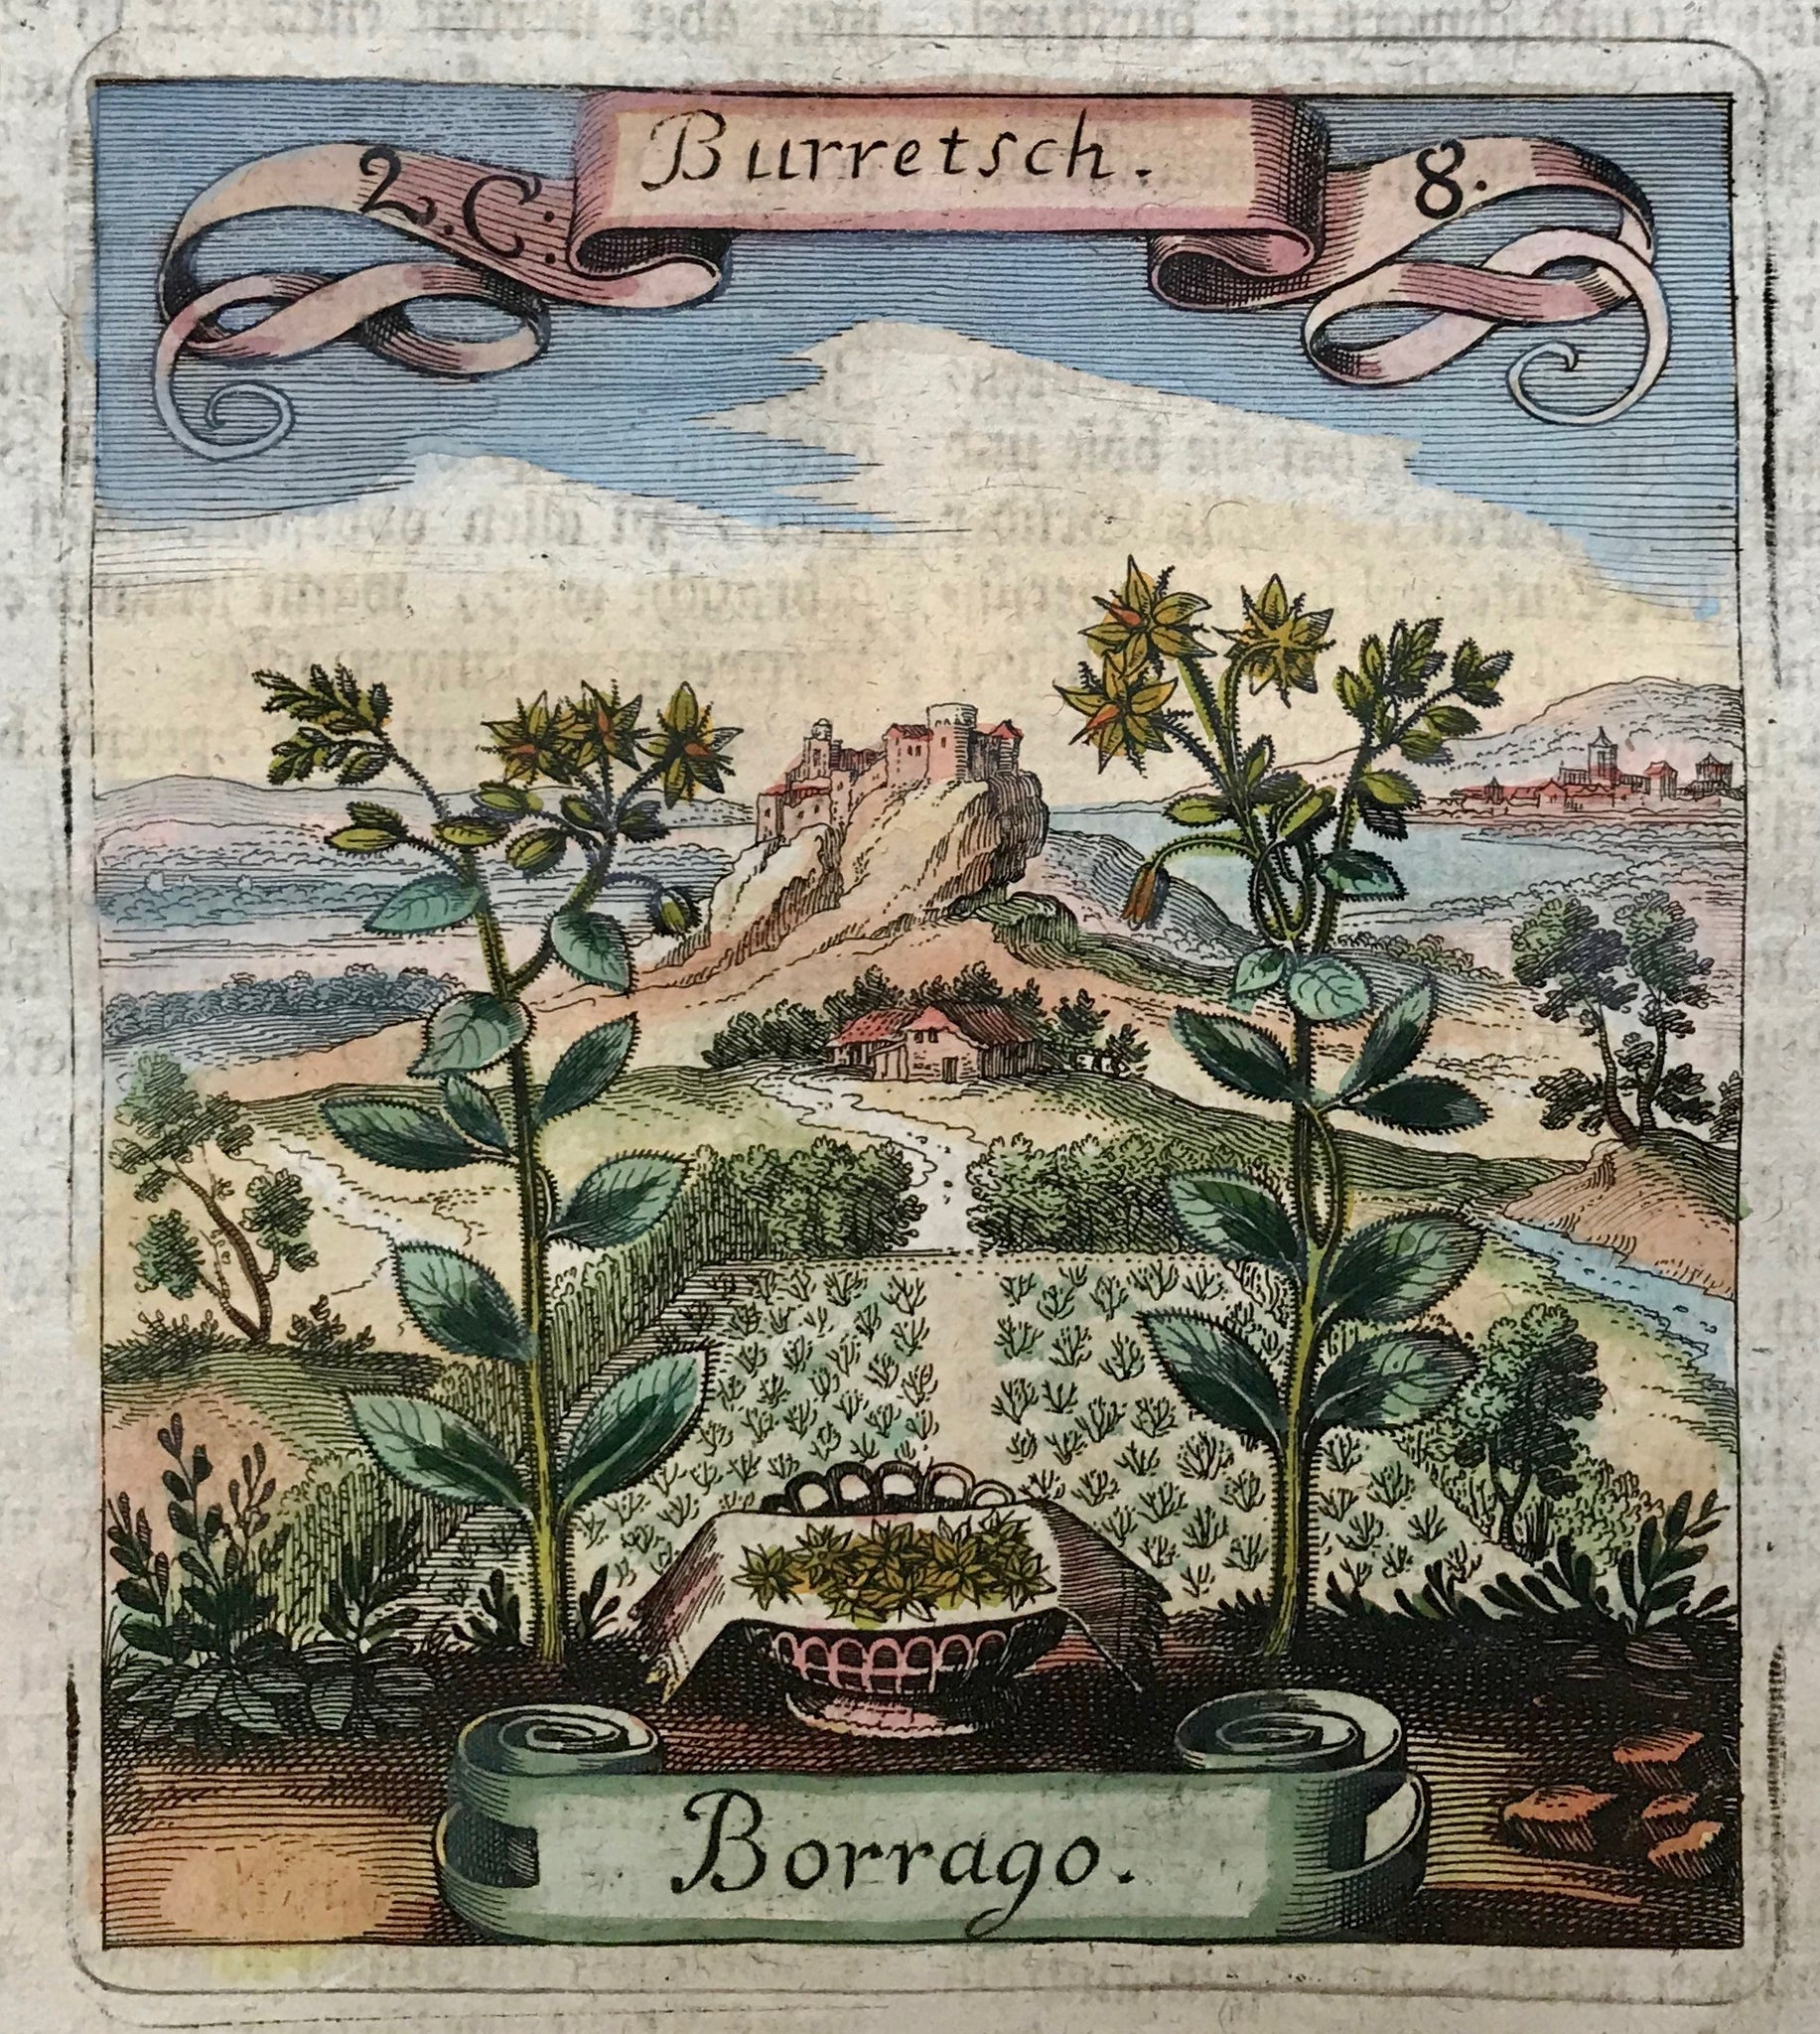 "Borrago - Burretsch  Here we get to know him an author of simply wonderful descriptions of plants and flowers used in medicine. His specialty was to set the flowers oversize into a landscape, adorning the print with flying ribbon in which the name of the plant or flower is engraved. The book in which these little gems were published was called ""Die fruchtbringende Gesellschaft"""